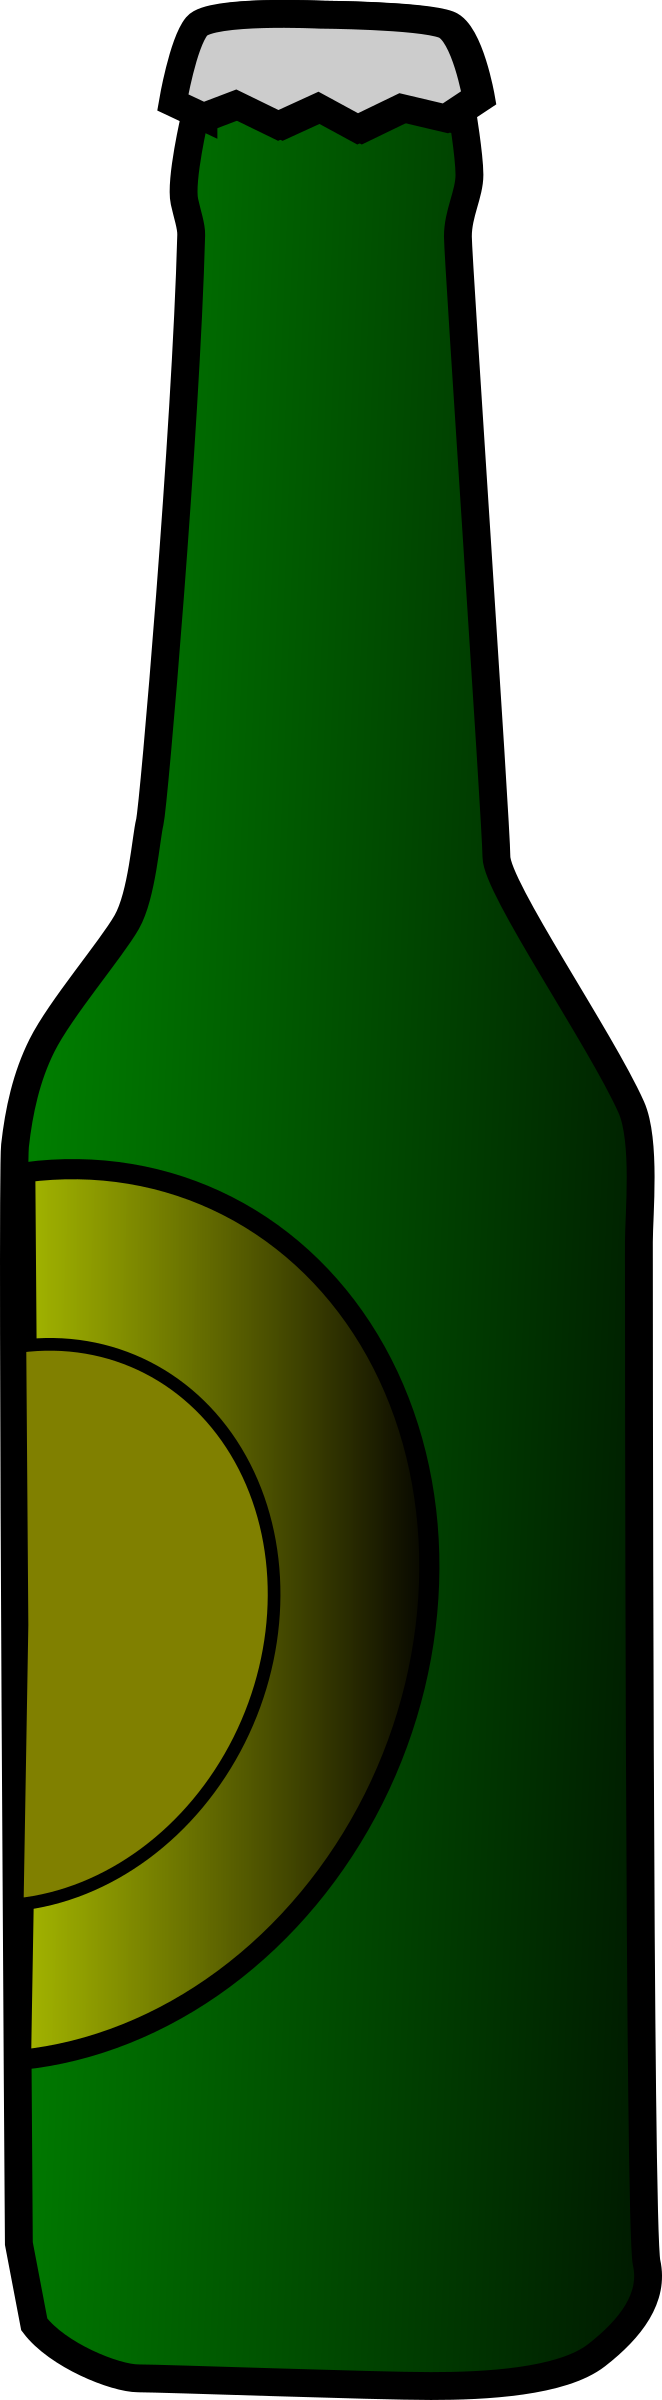 Beer Bottle by aungkarns